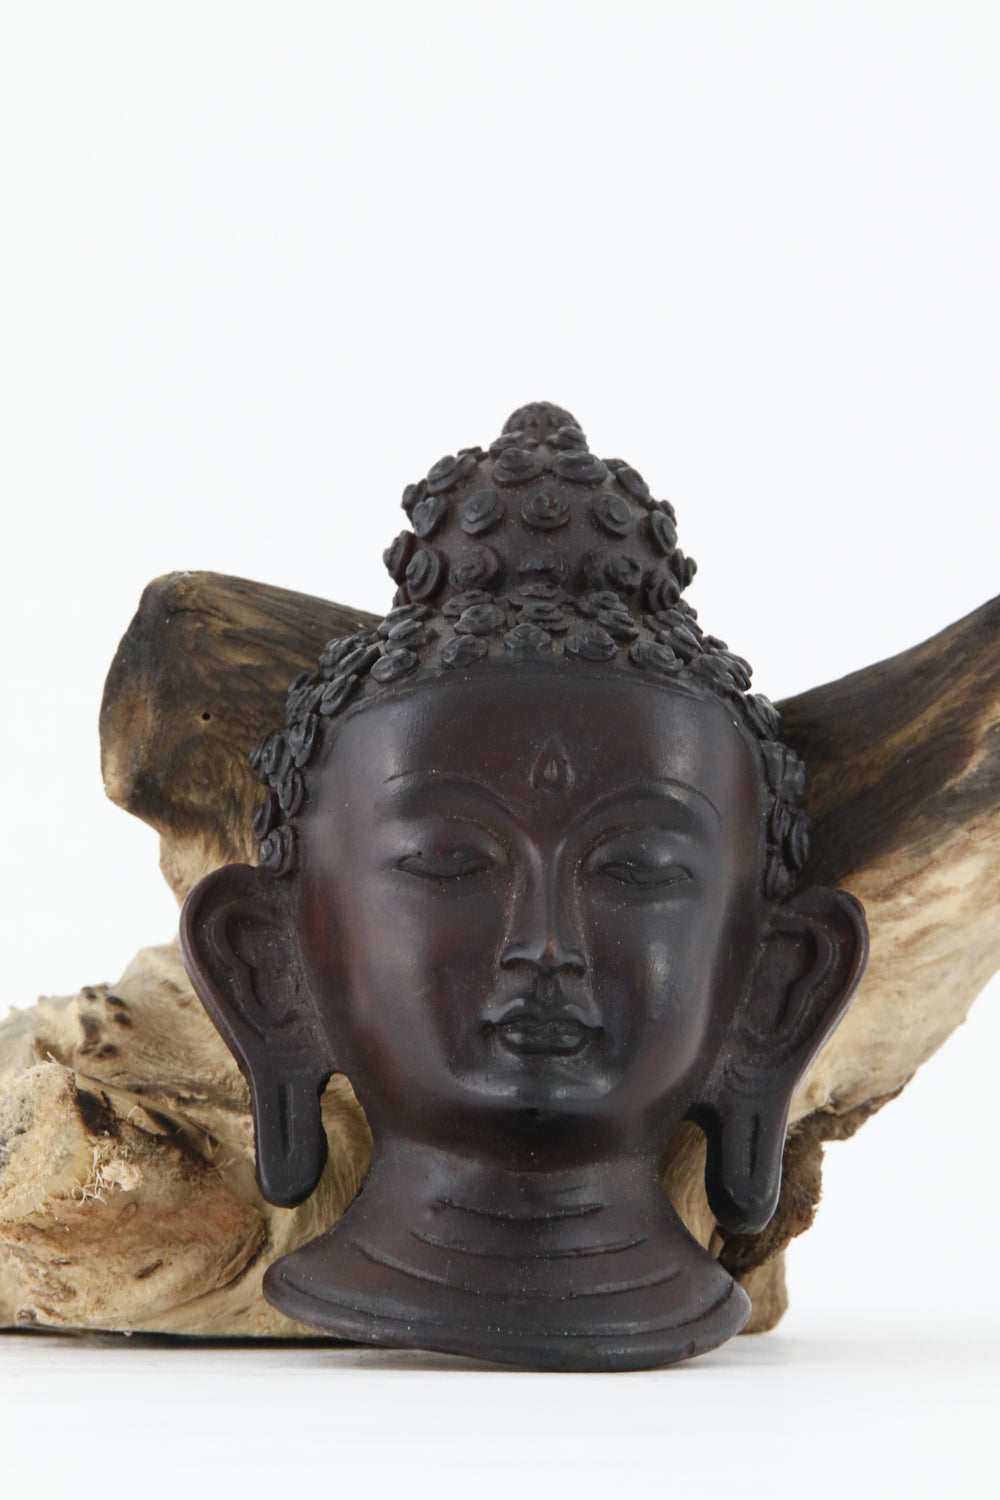 BUDDHA HEAD WALL HANGING STATUE DARK FRONT VIEW